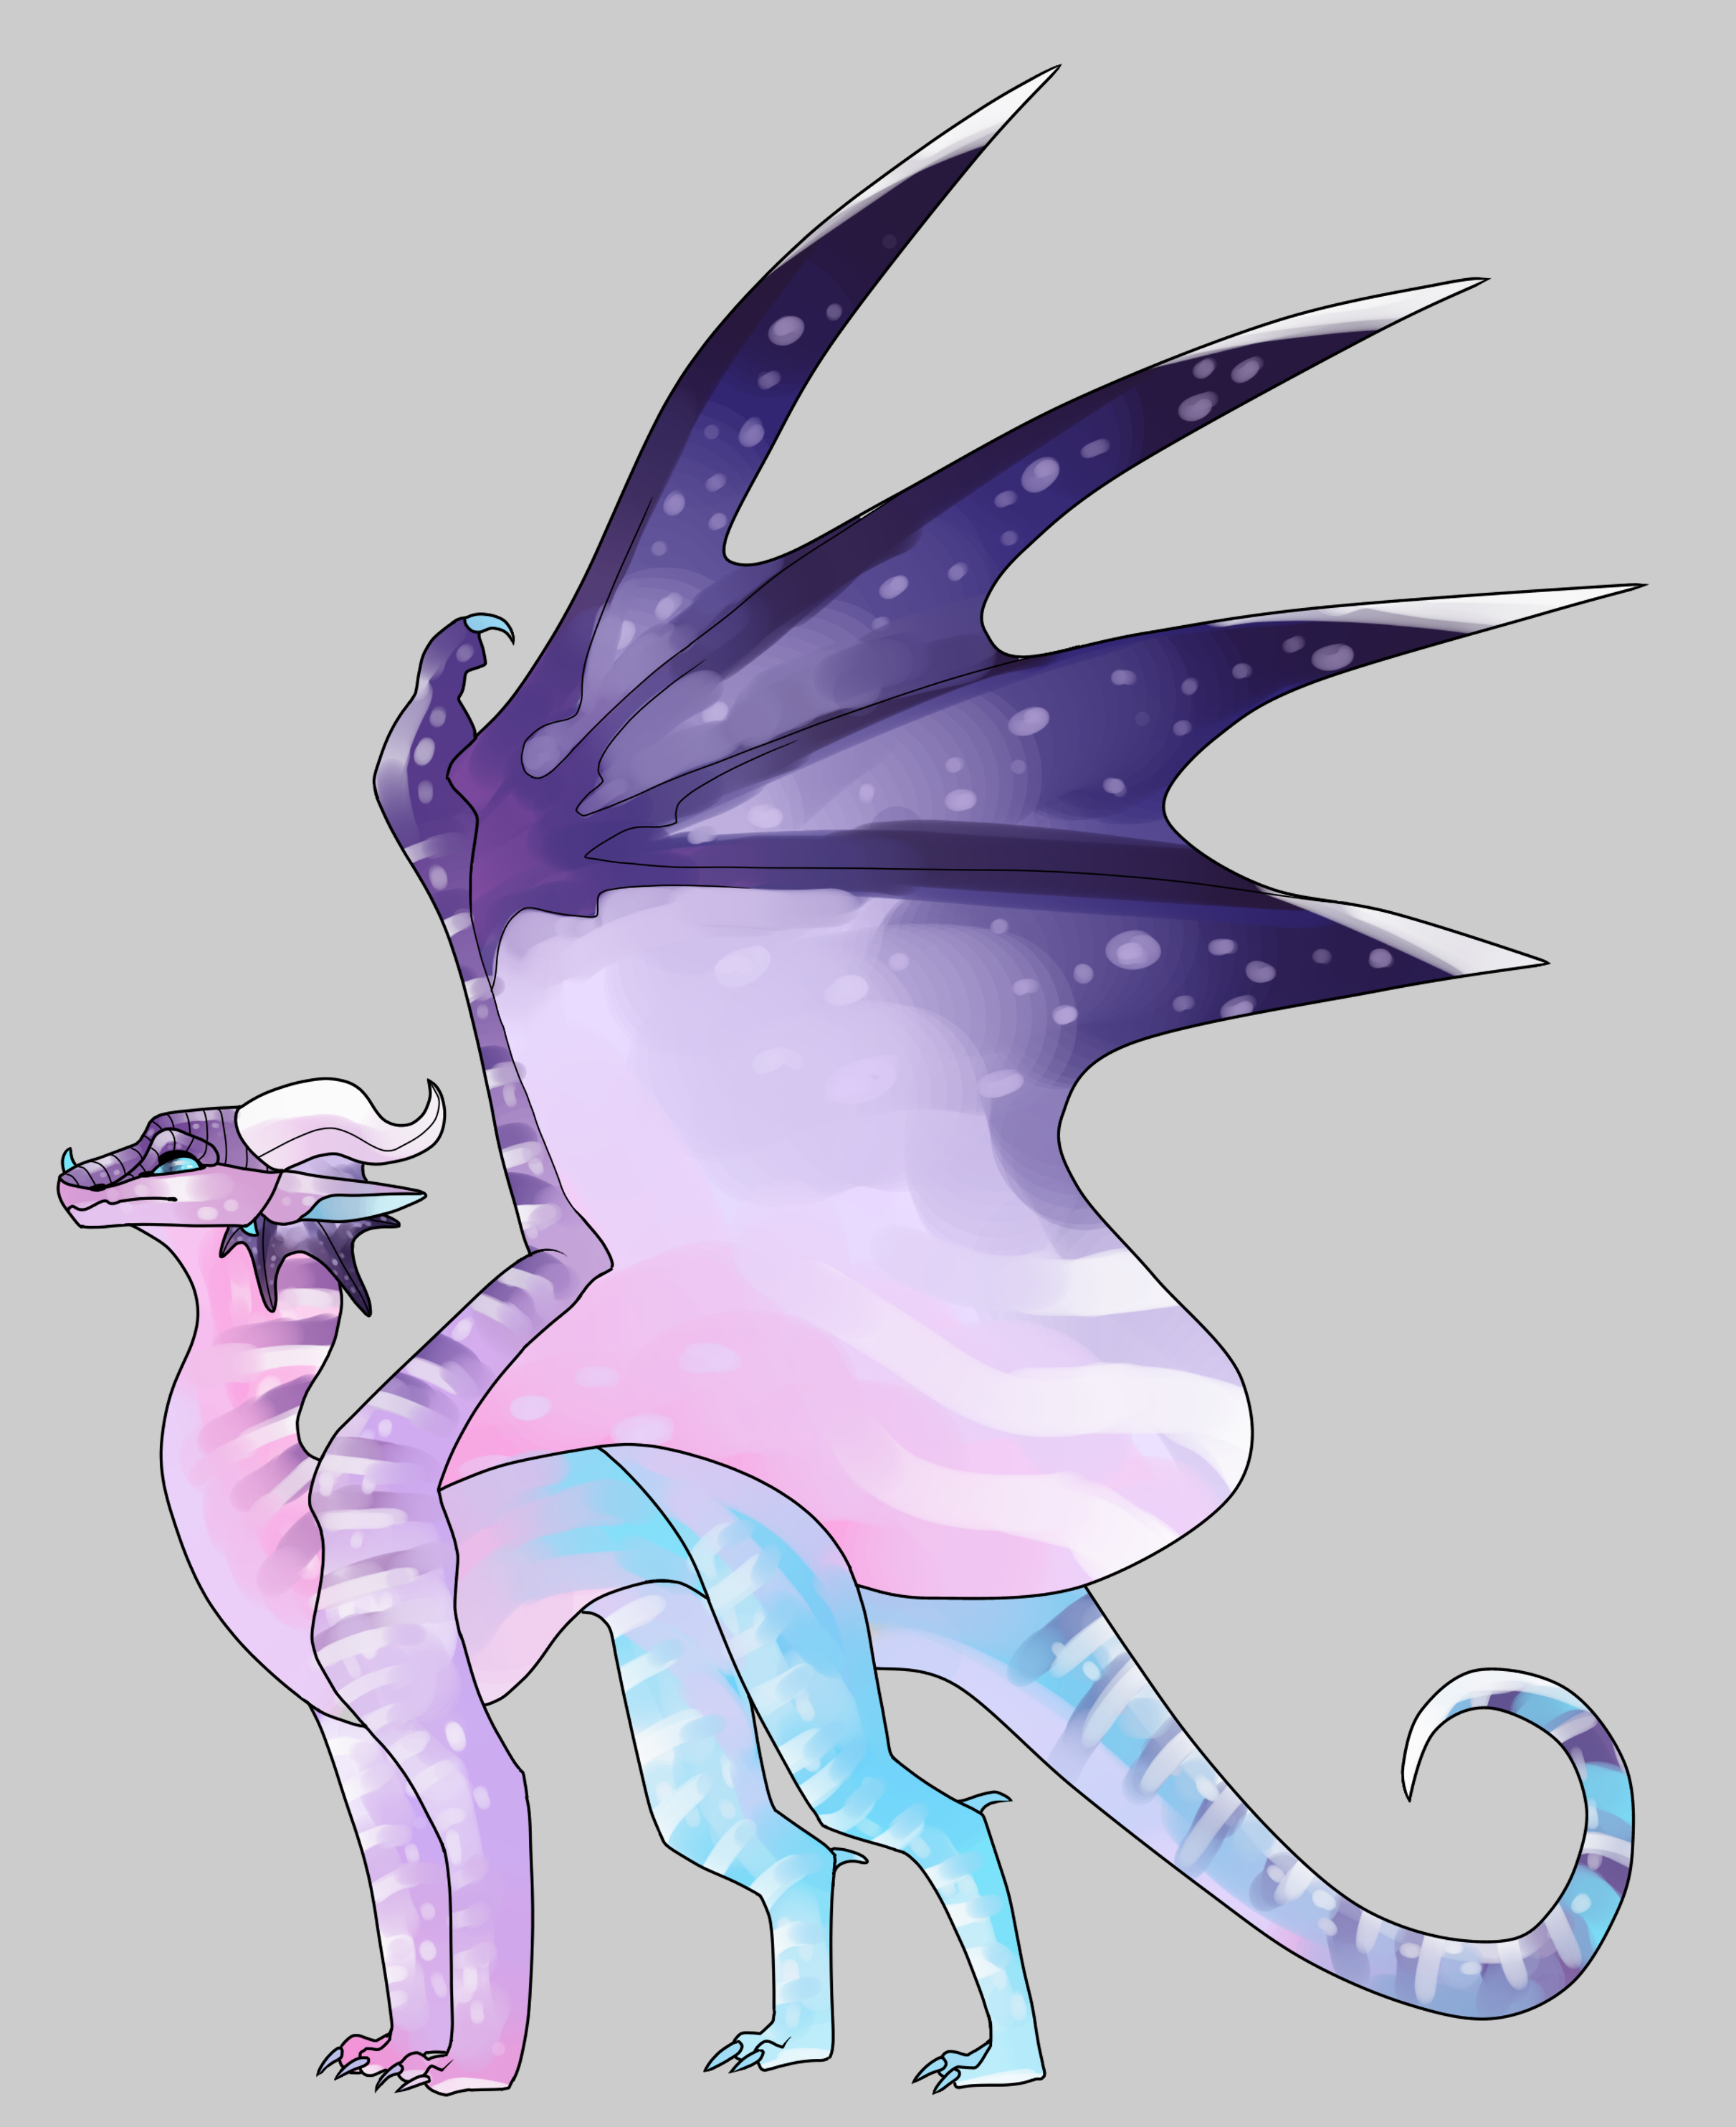 Https Kjfromcolors Deviantart Com Art Valador Sketches 743845255 Wings Of Fire Dragons Fire Sketch Dragon Wings